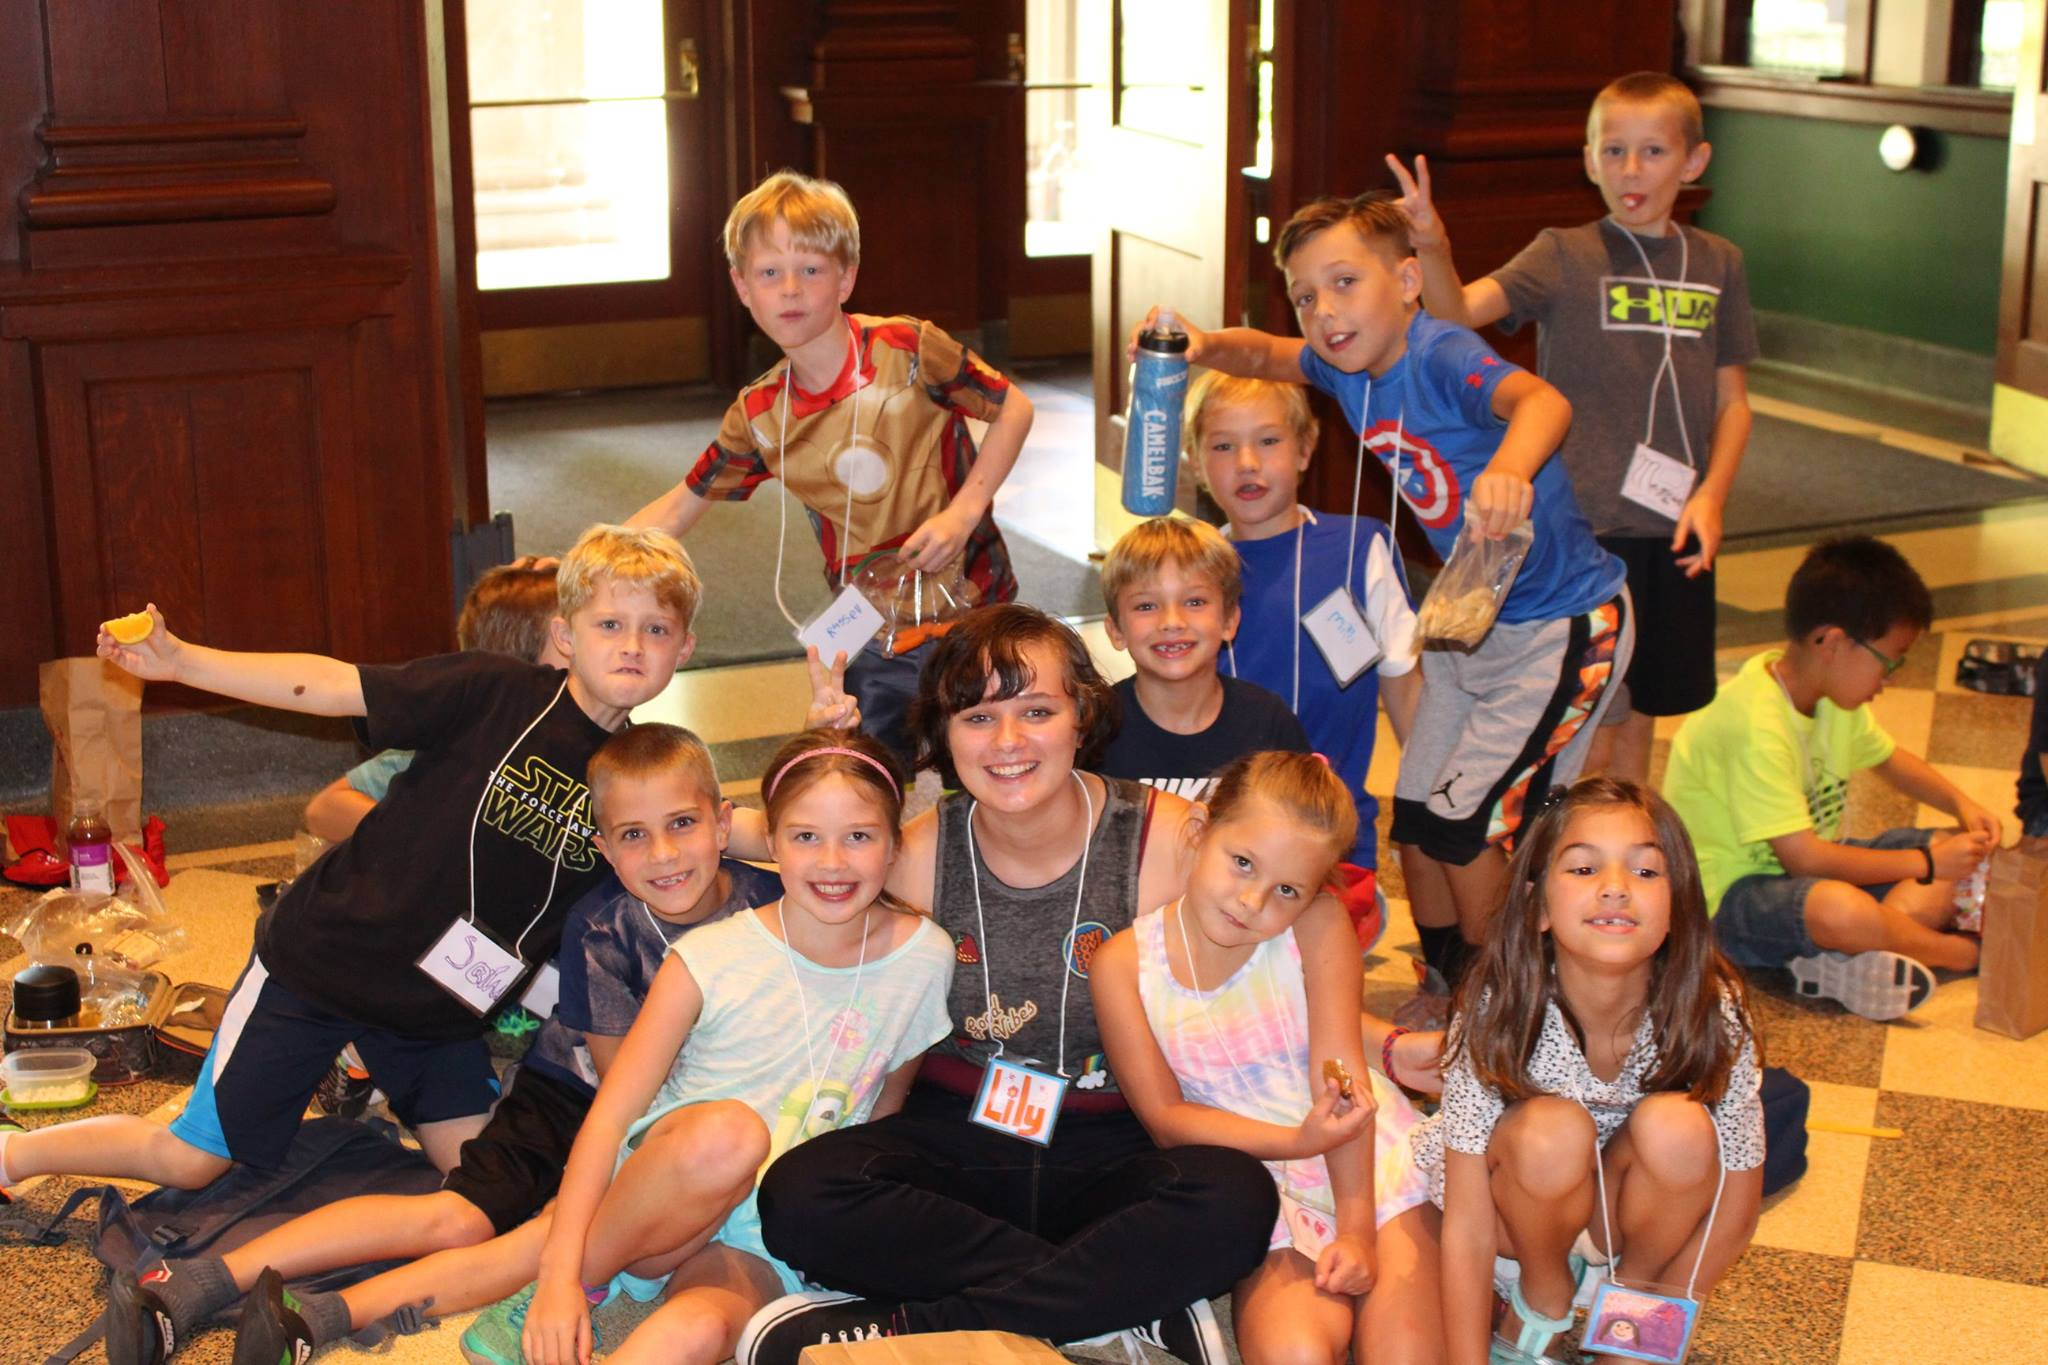 Missoula Children's Theater Drama Camp group shot